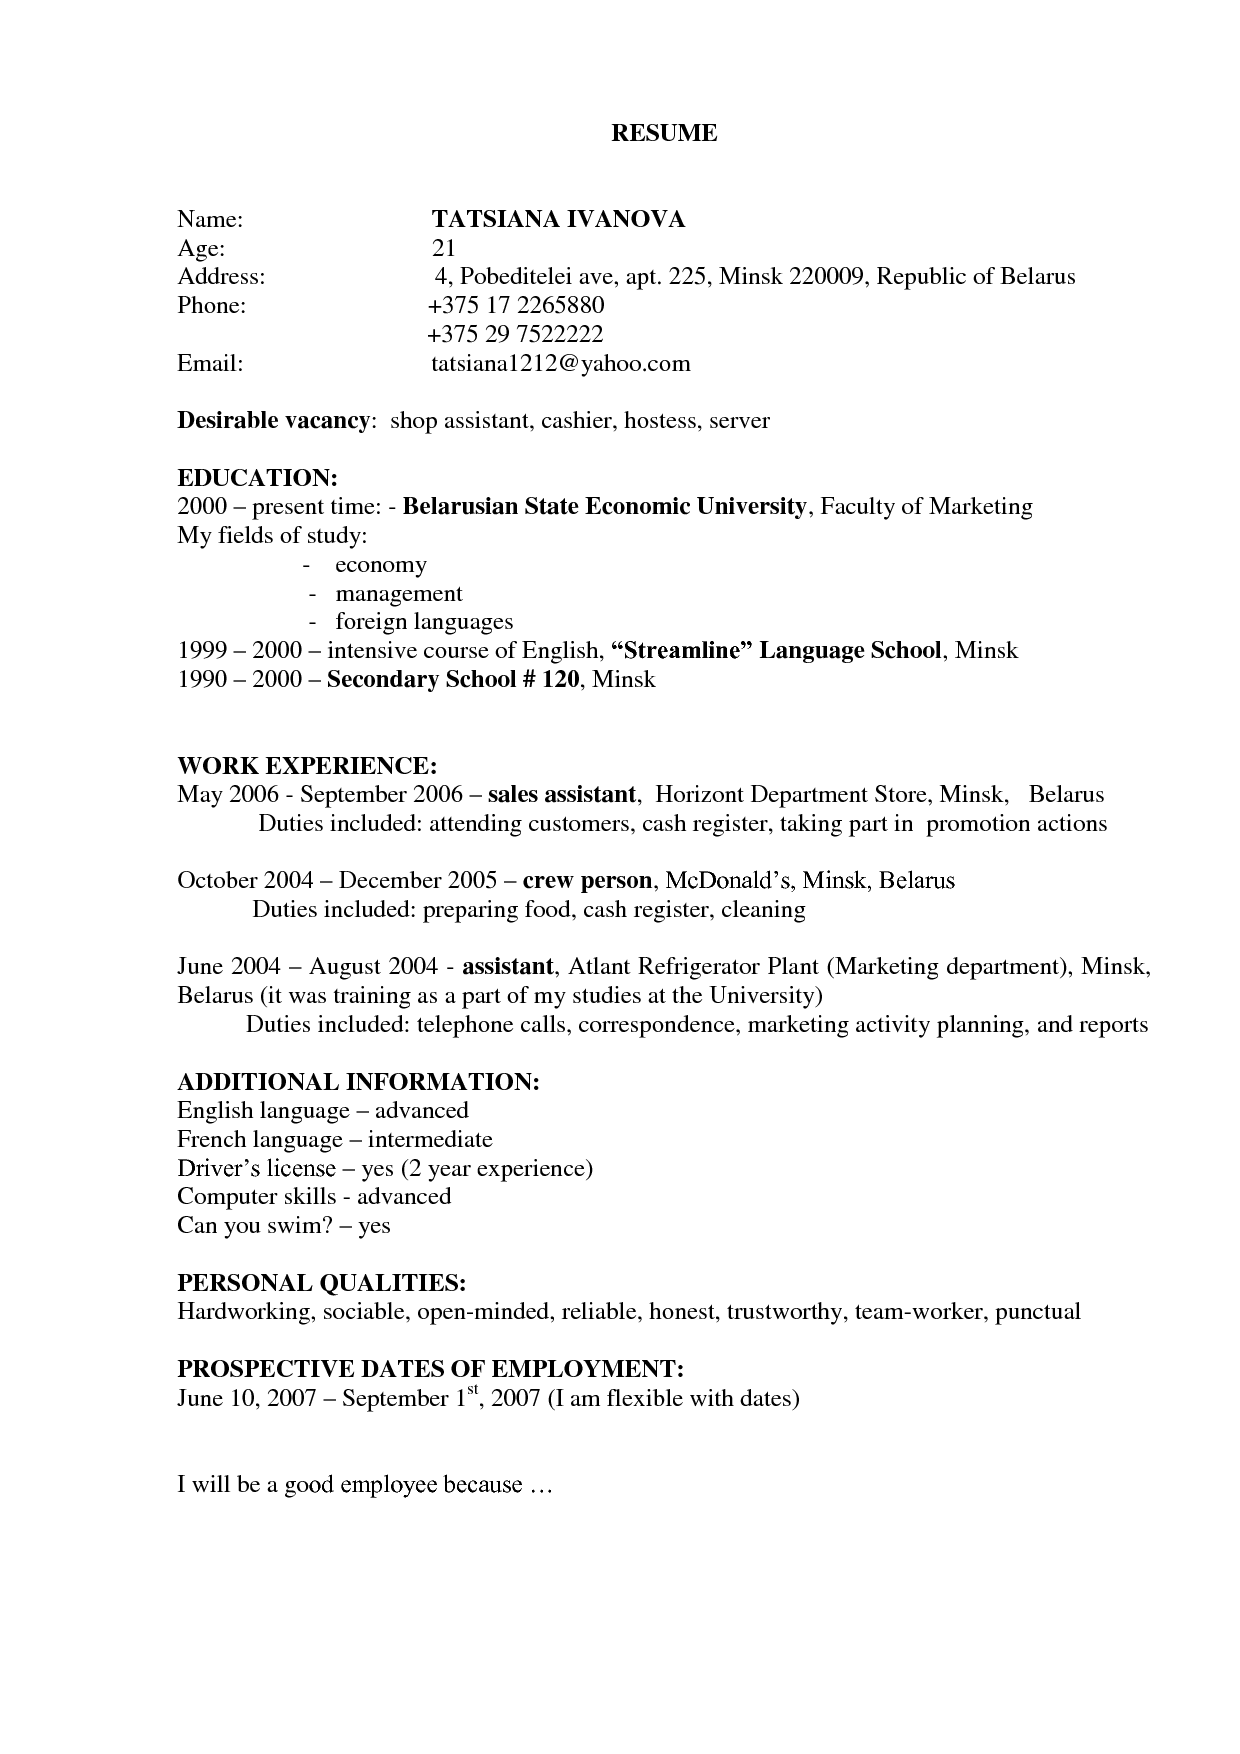 resume template no work experience  Resume. Example Of General Construction Resume Templates ..